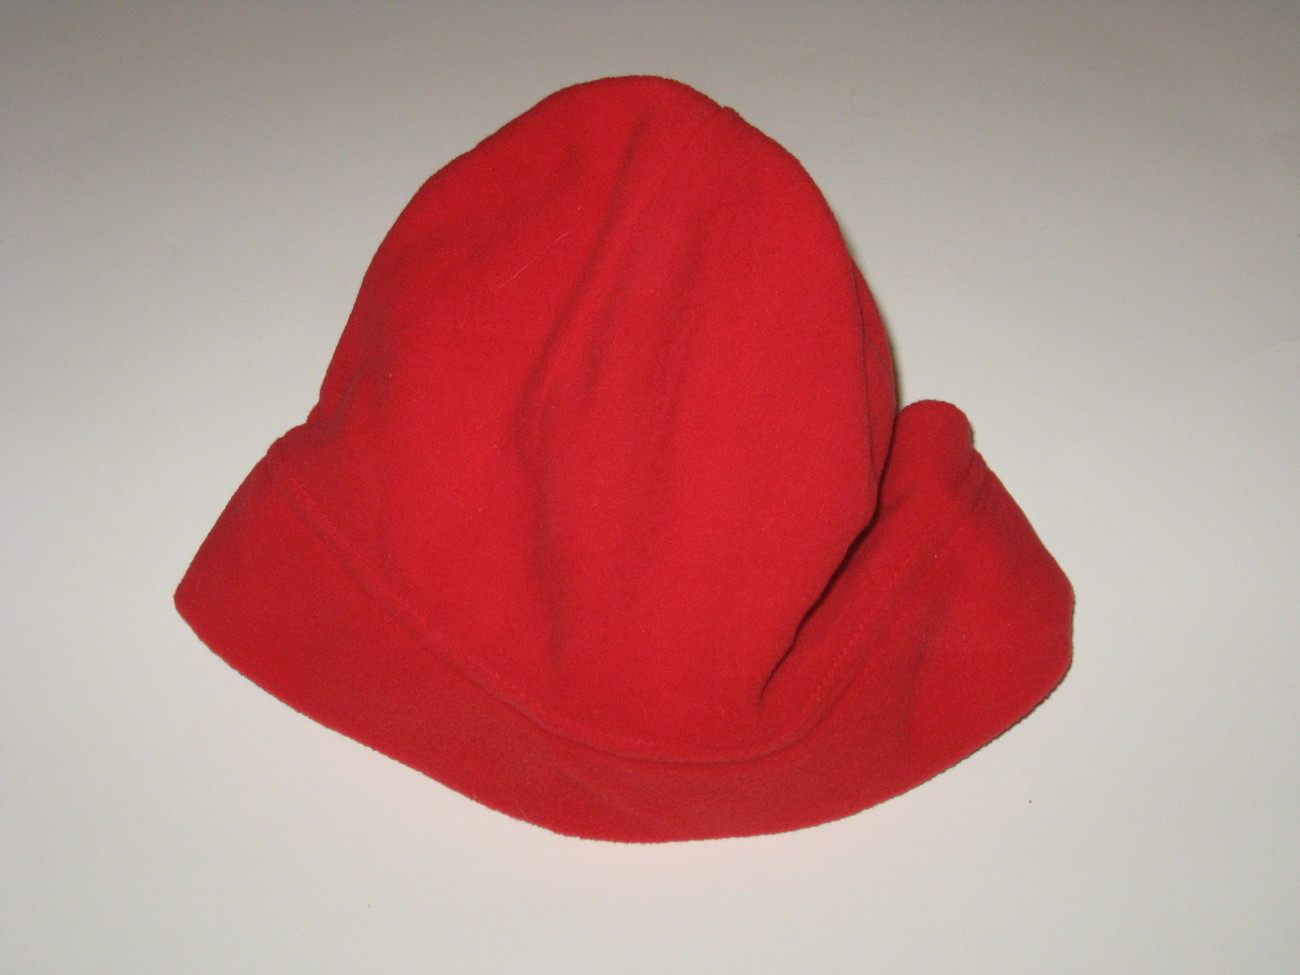 Lands End Nantex Fleece Red Beanie Cap Hat New One Size